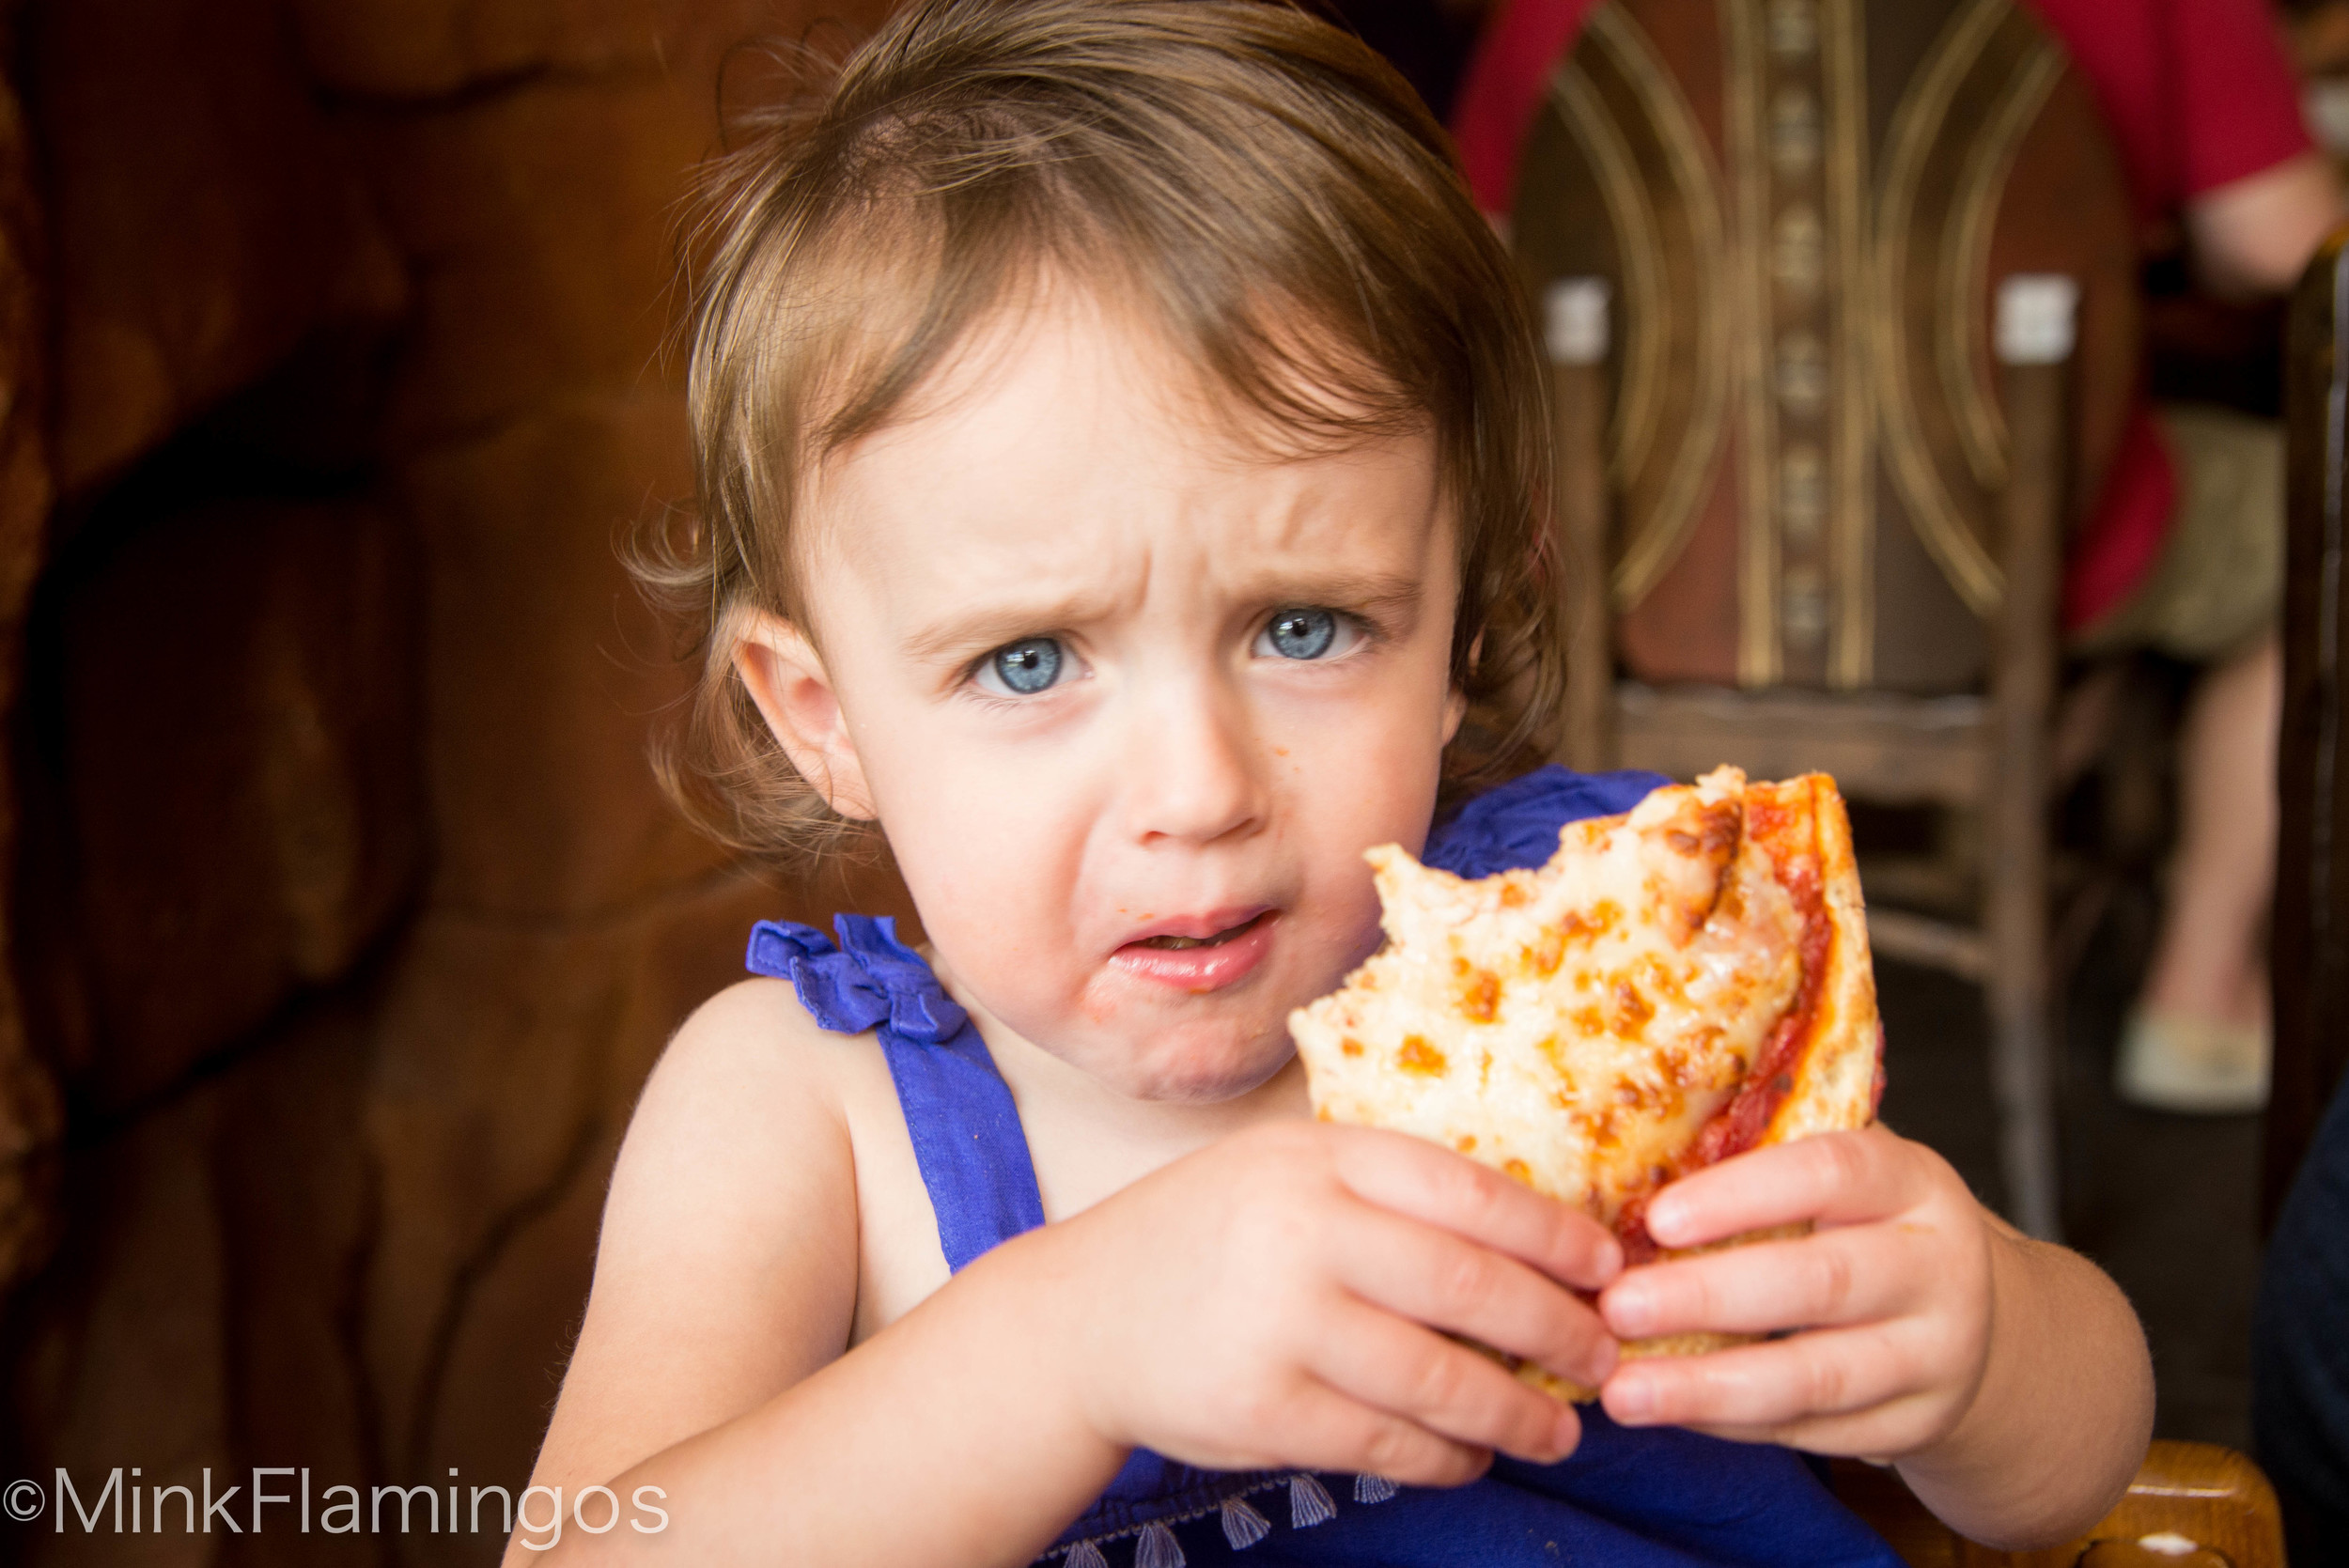 Share my pizza?!